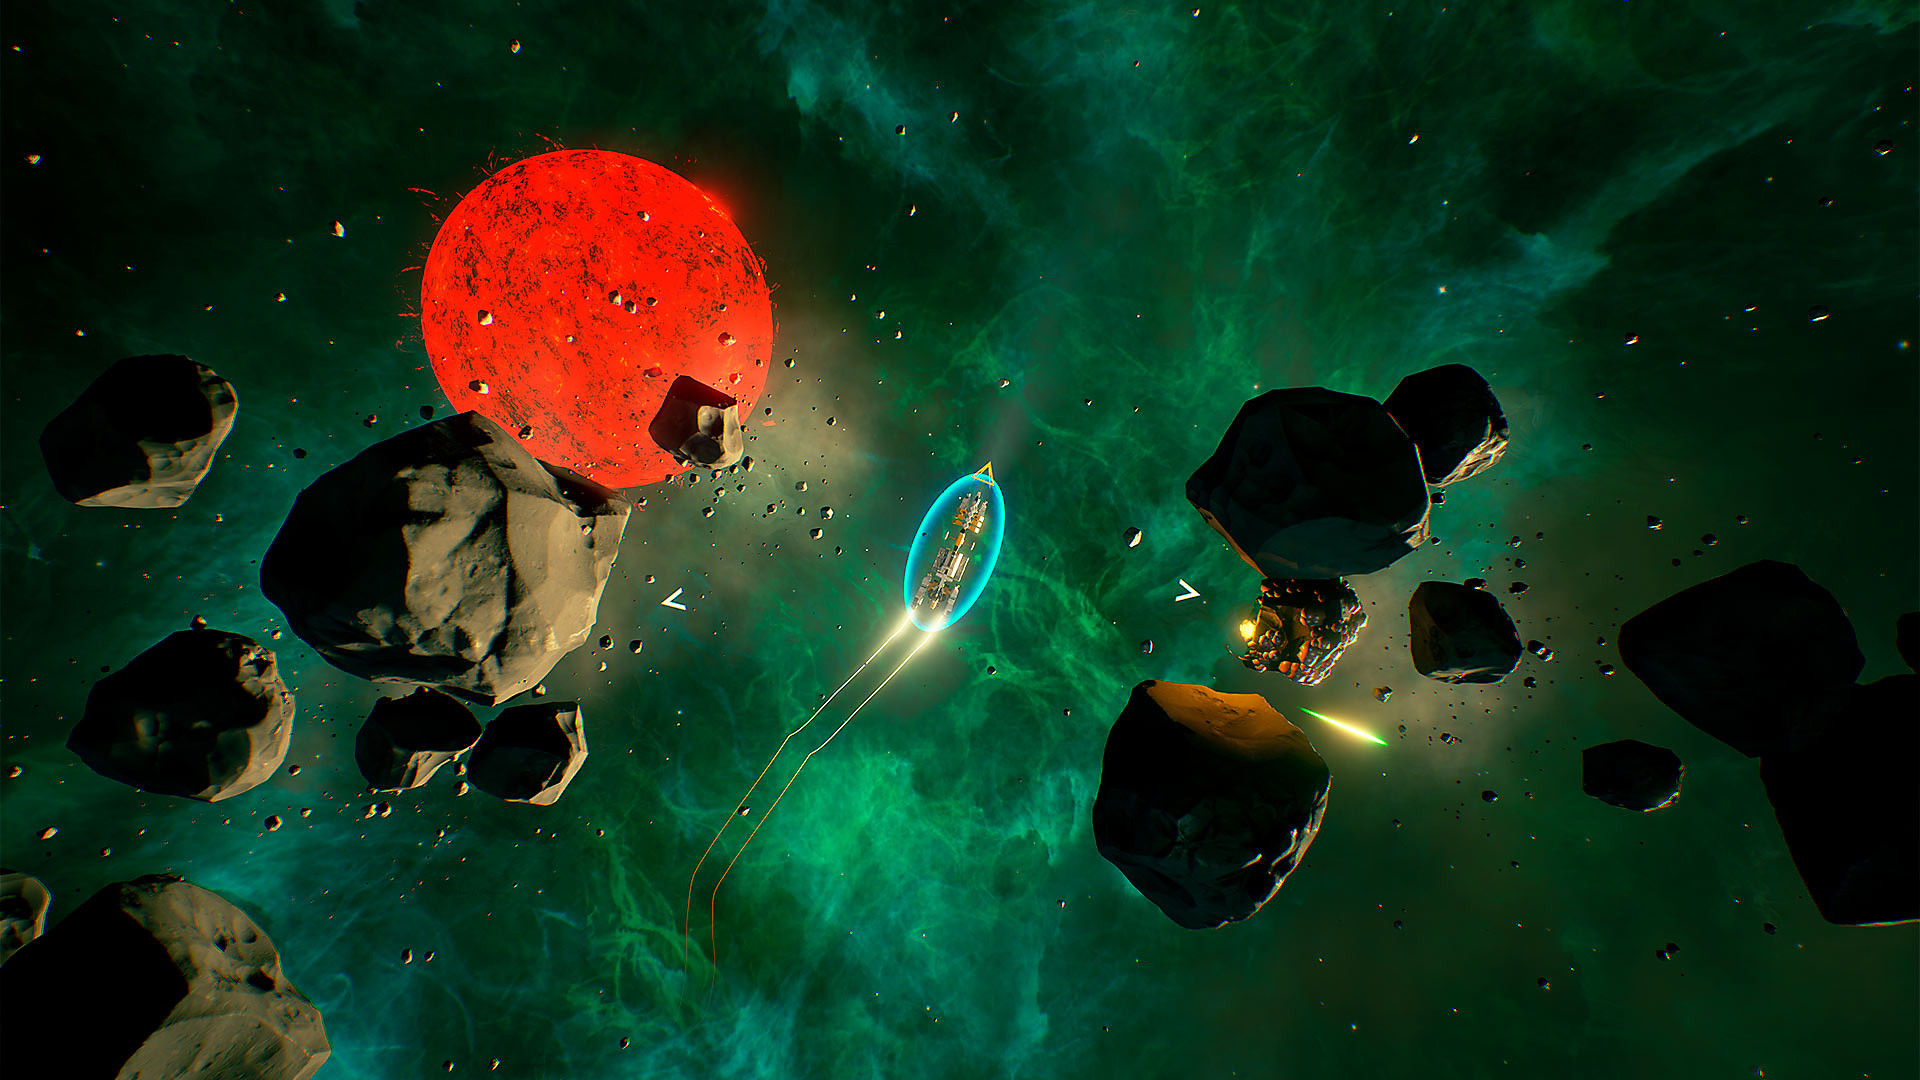 Ship flying through asteroids with a red sun in the background